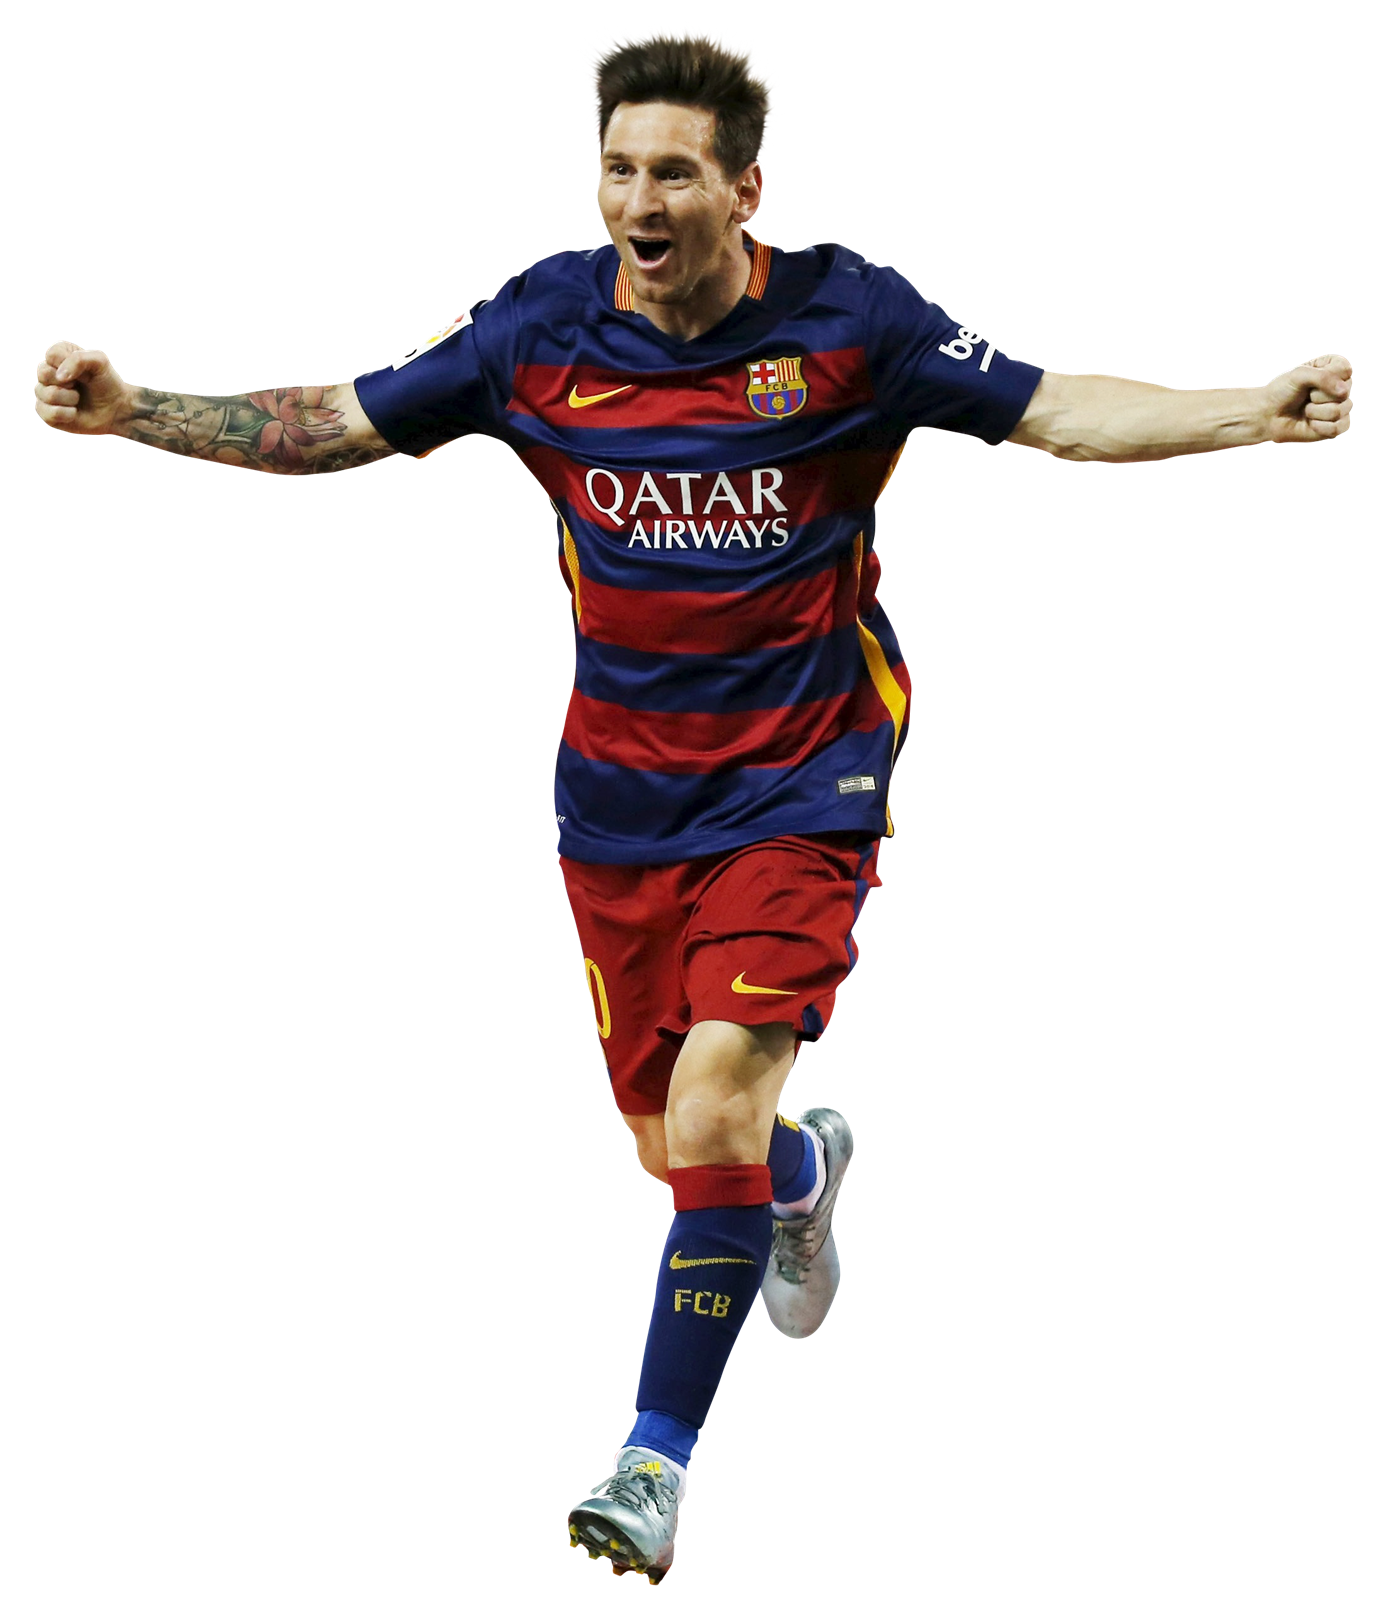 Graphics Portable Transparency Network Free Photo Png Messi Fifa Football Images